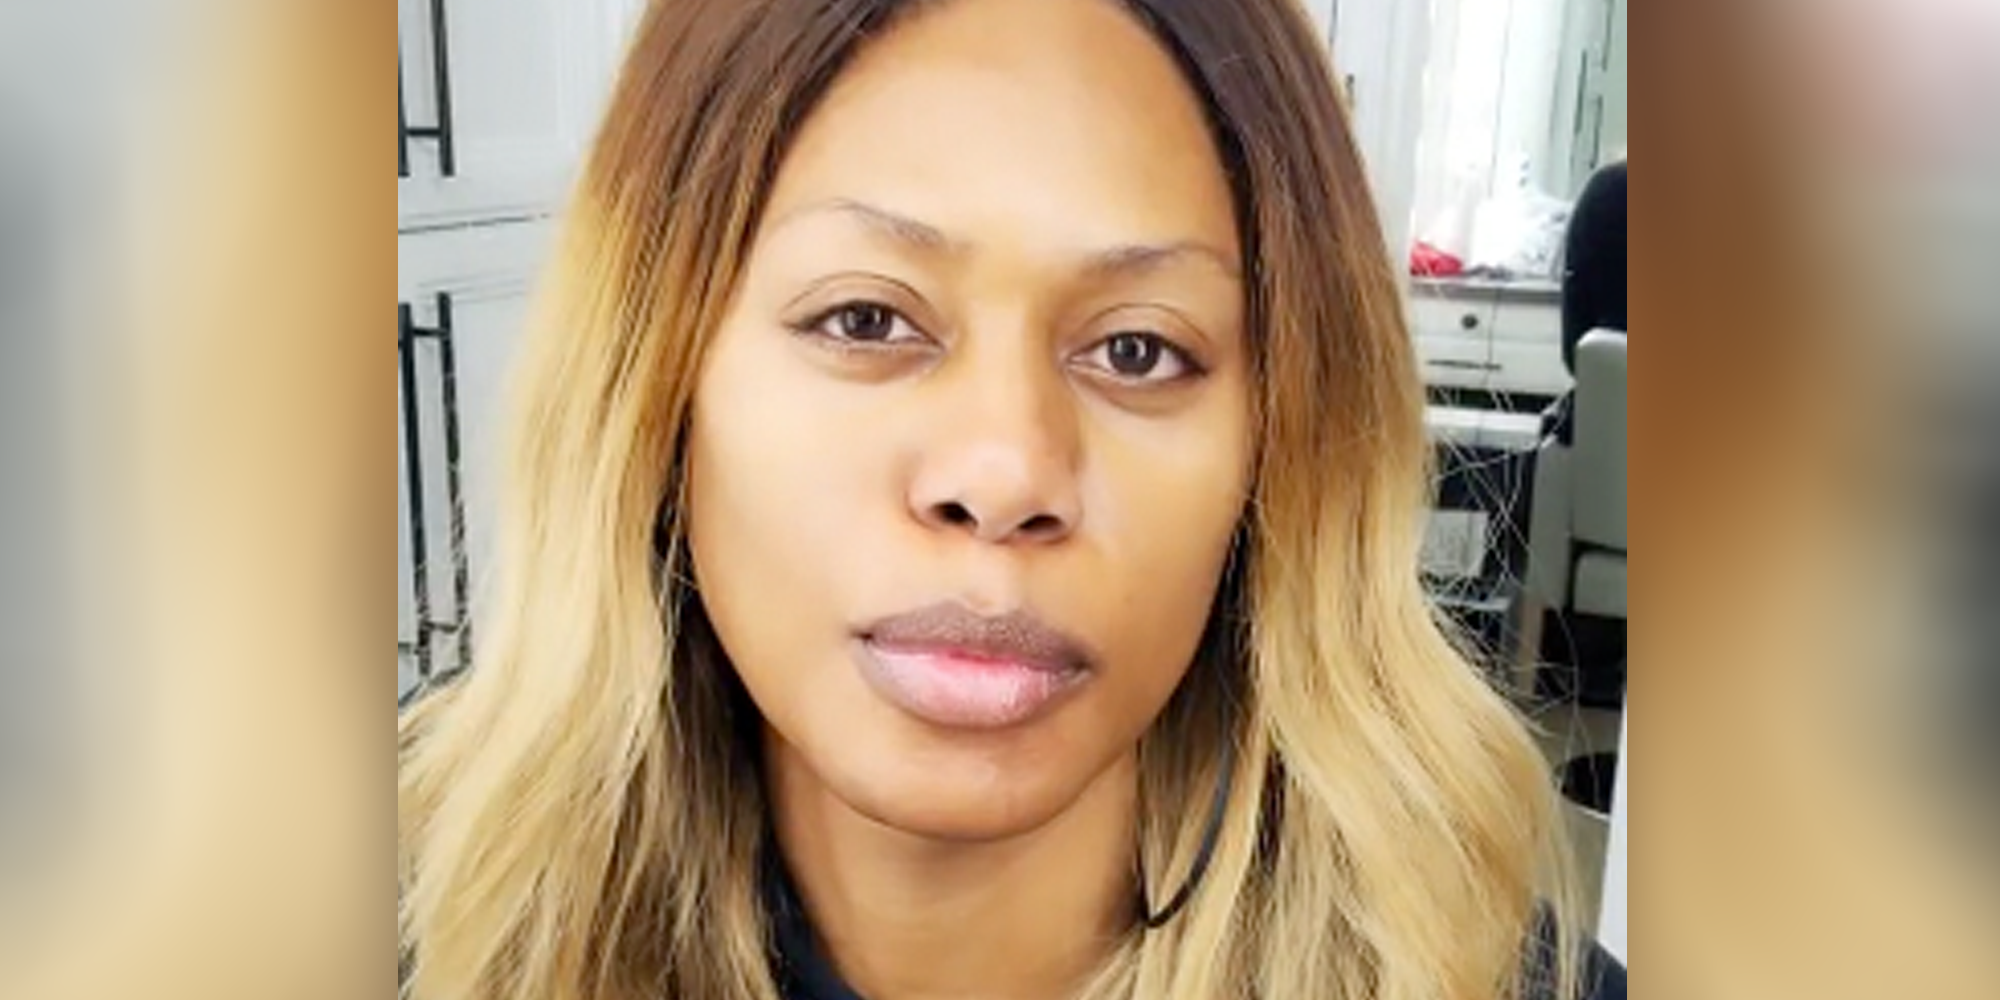 Laverne Cox Reveals She Was The Target Of A Transphobic Attack In An Emotional Video